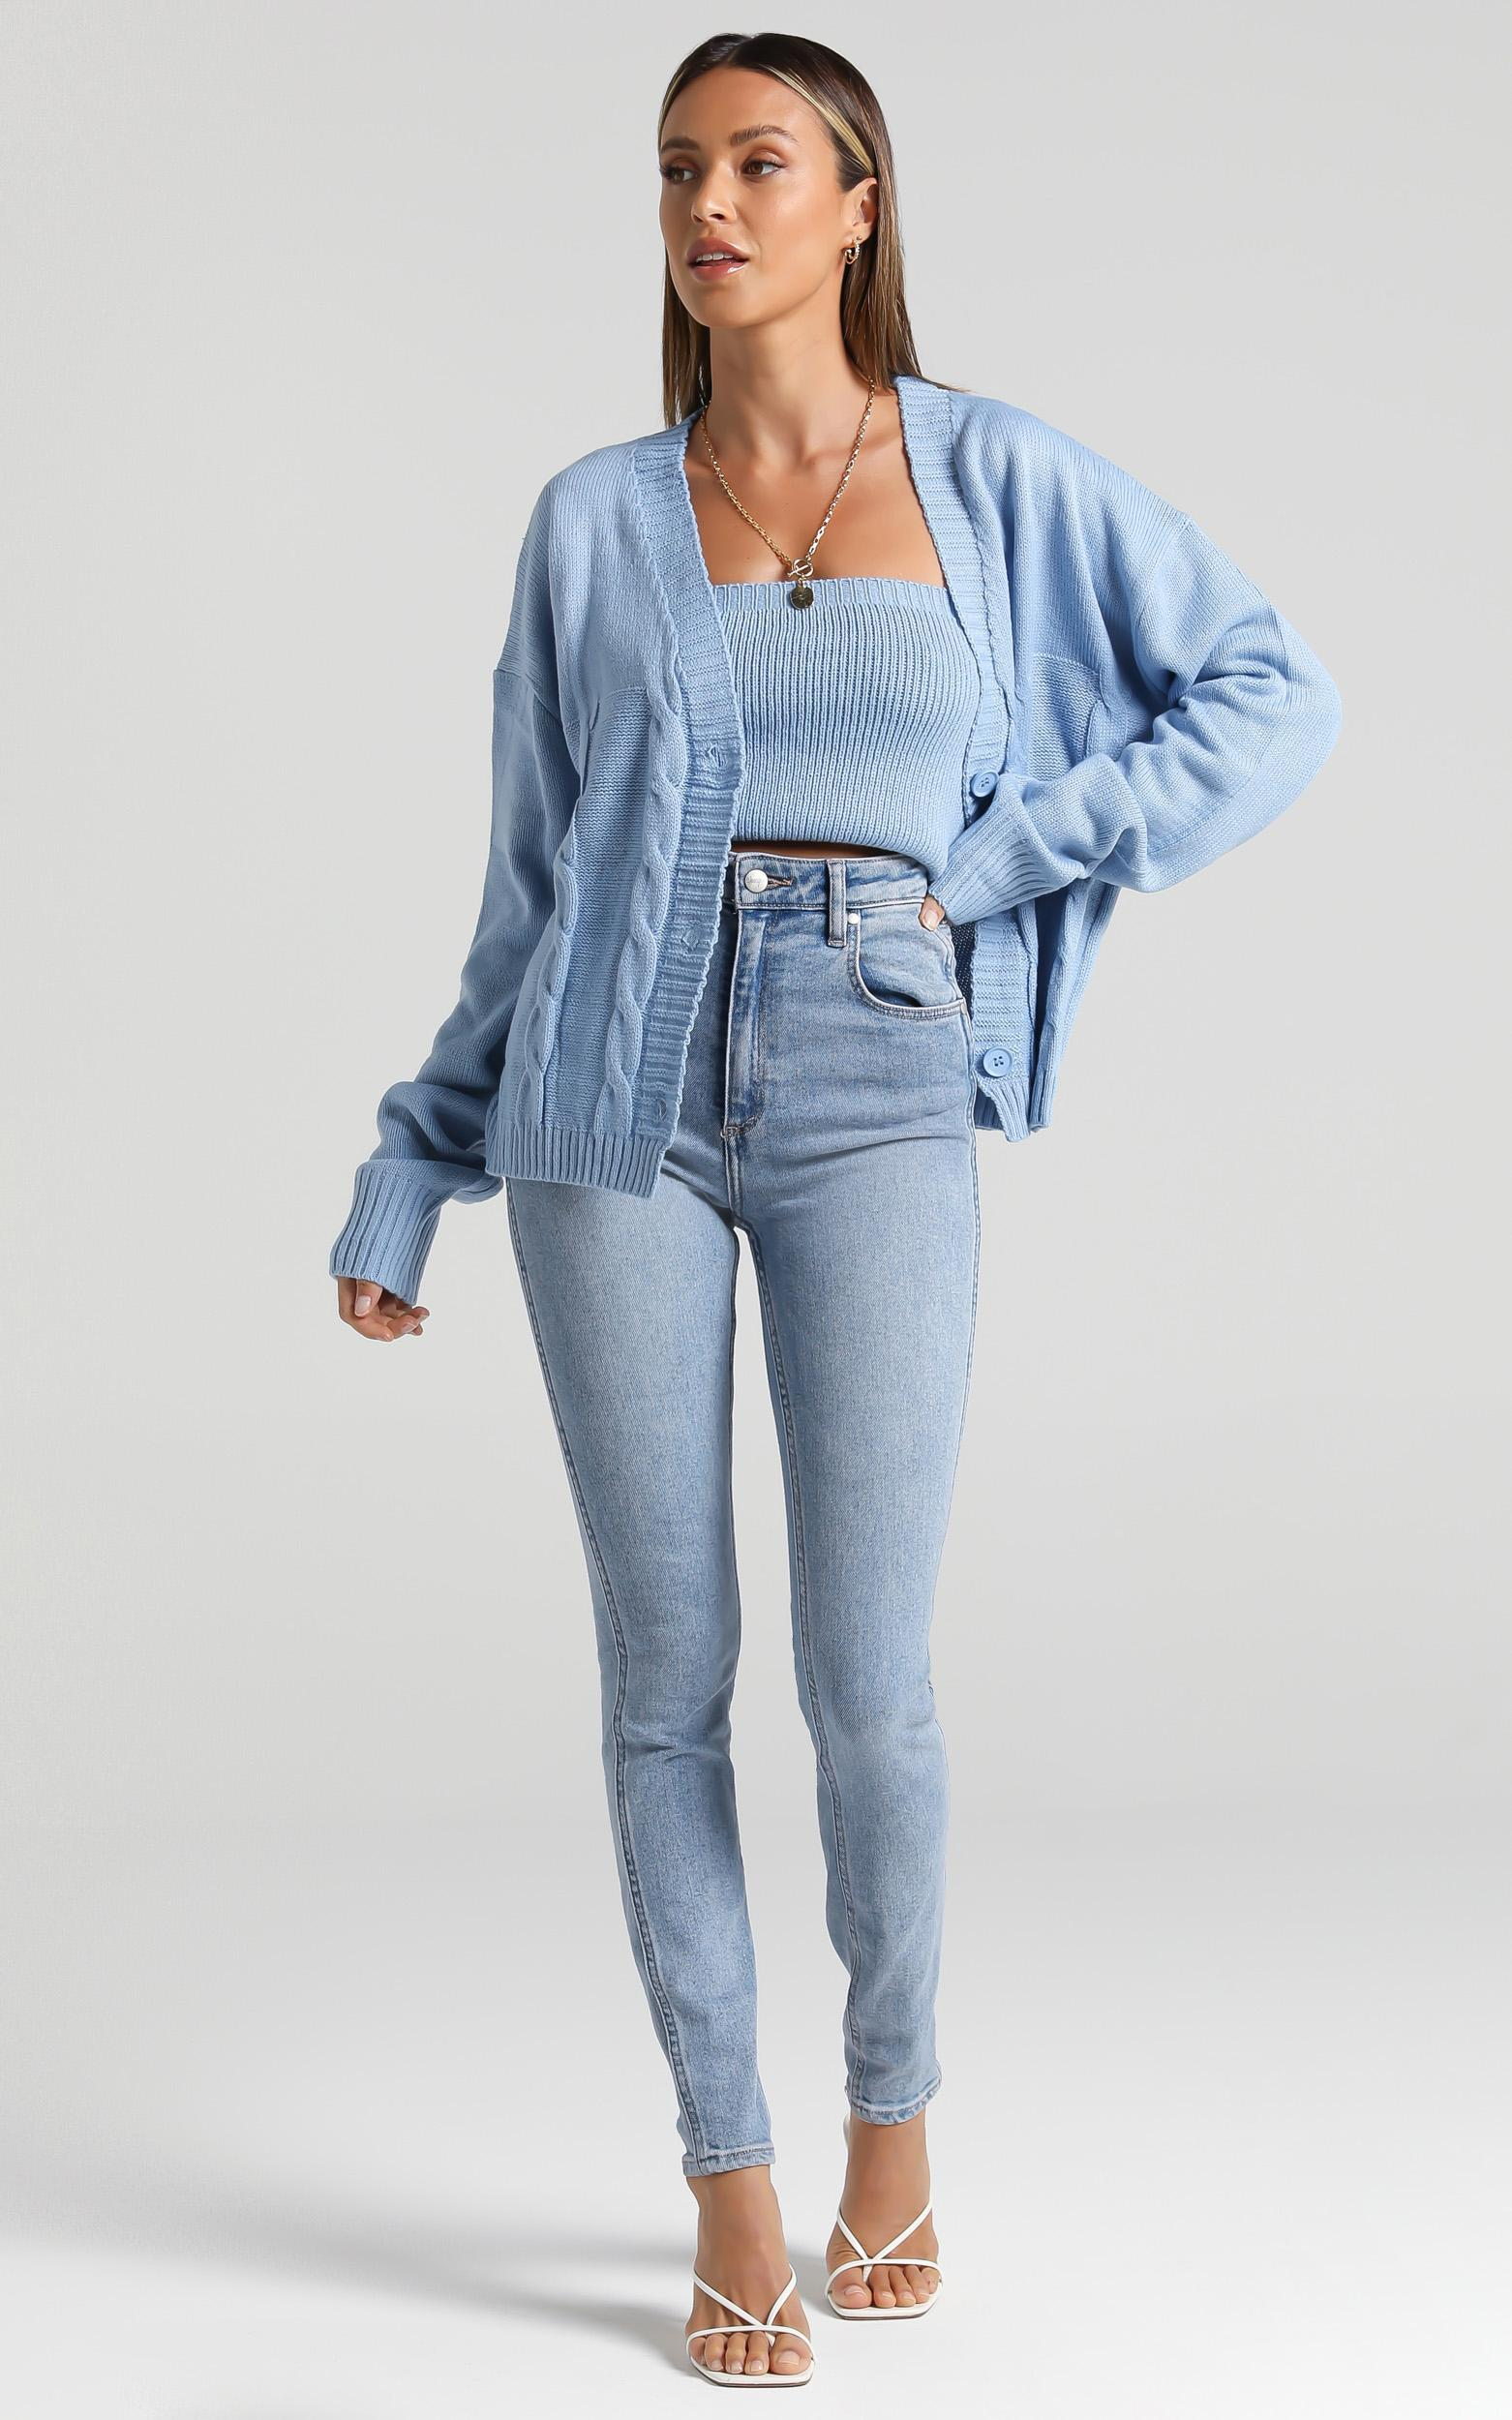 Poppy Knit Cardigan in Blue - L/XL, Blue, hi-res image number null